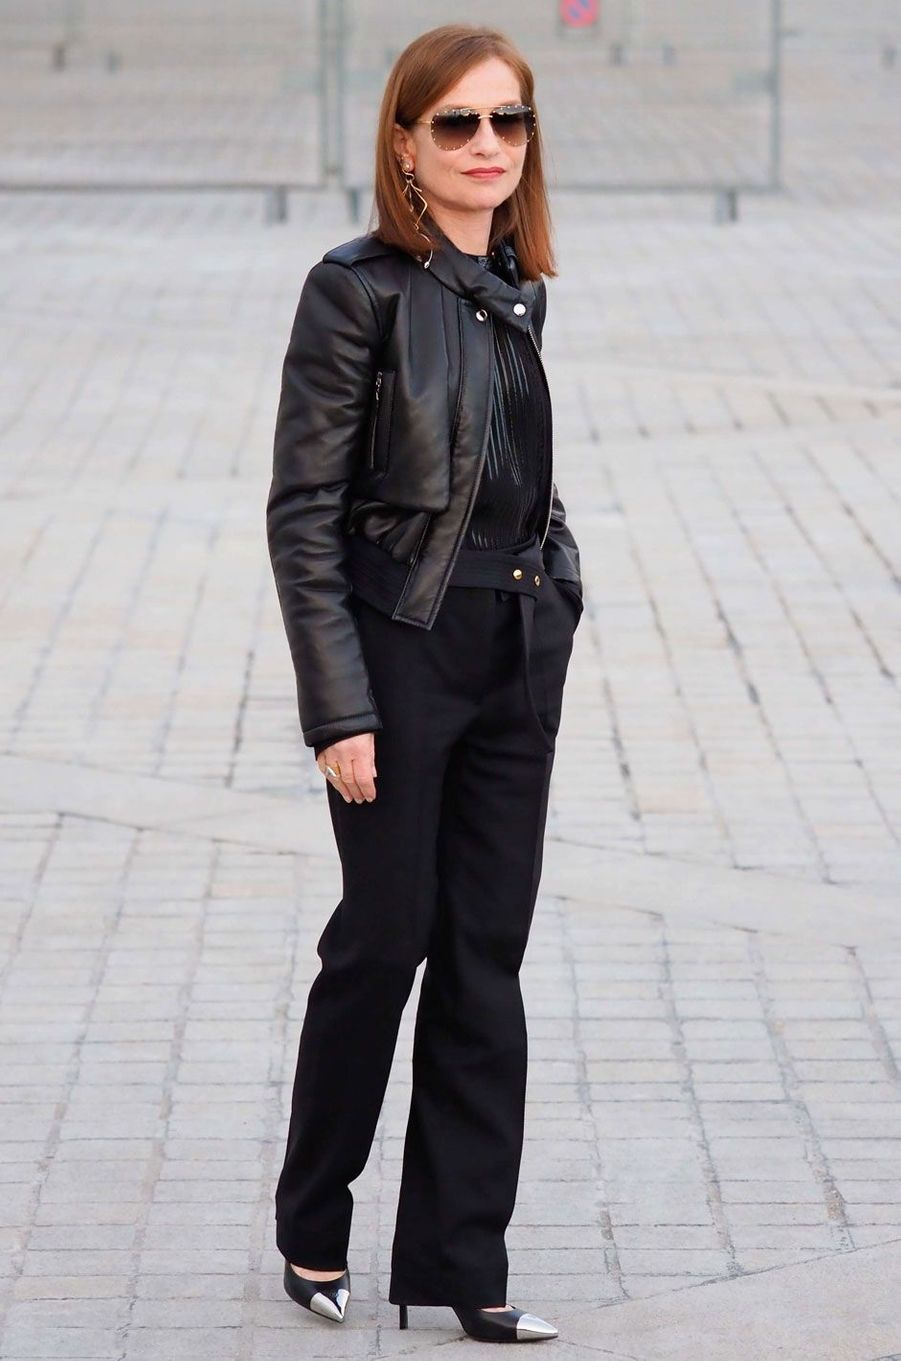 L'actrice Isabelle Huppert